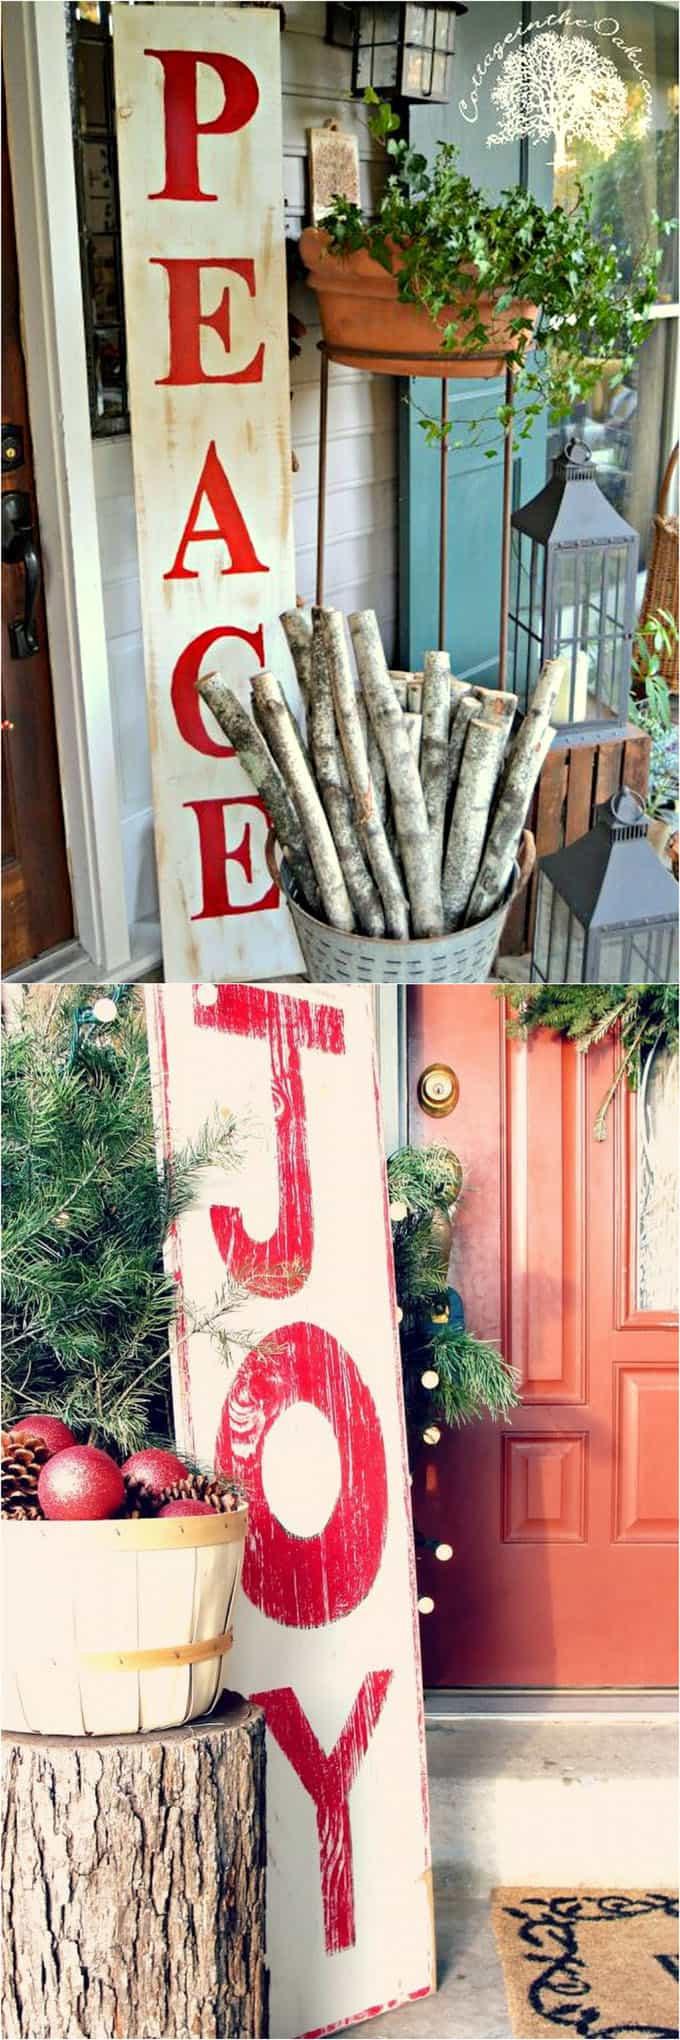 Best ideas about DIY Outdoor Christmas Decorations . Save or Pin Gorgeous Outdoor Christmas Decorations 32 Best Ideas Now.